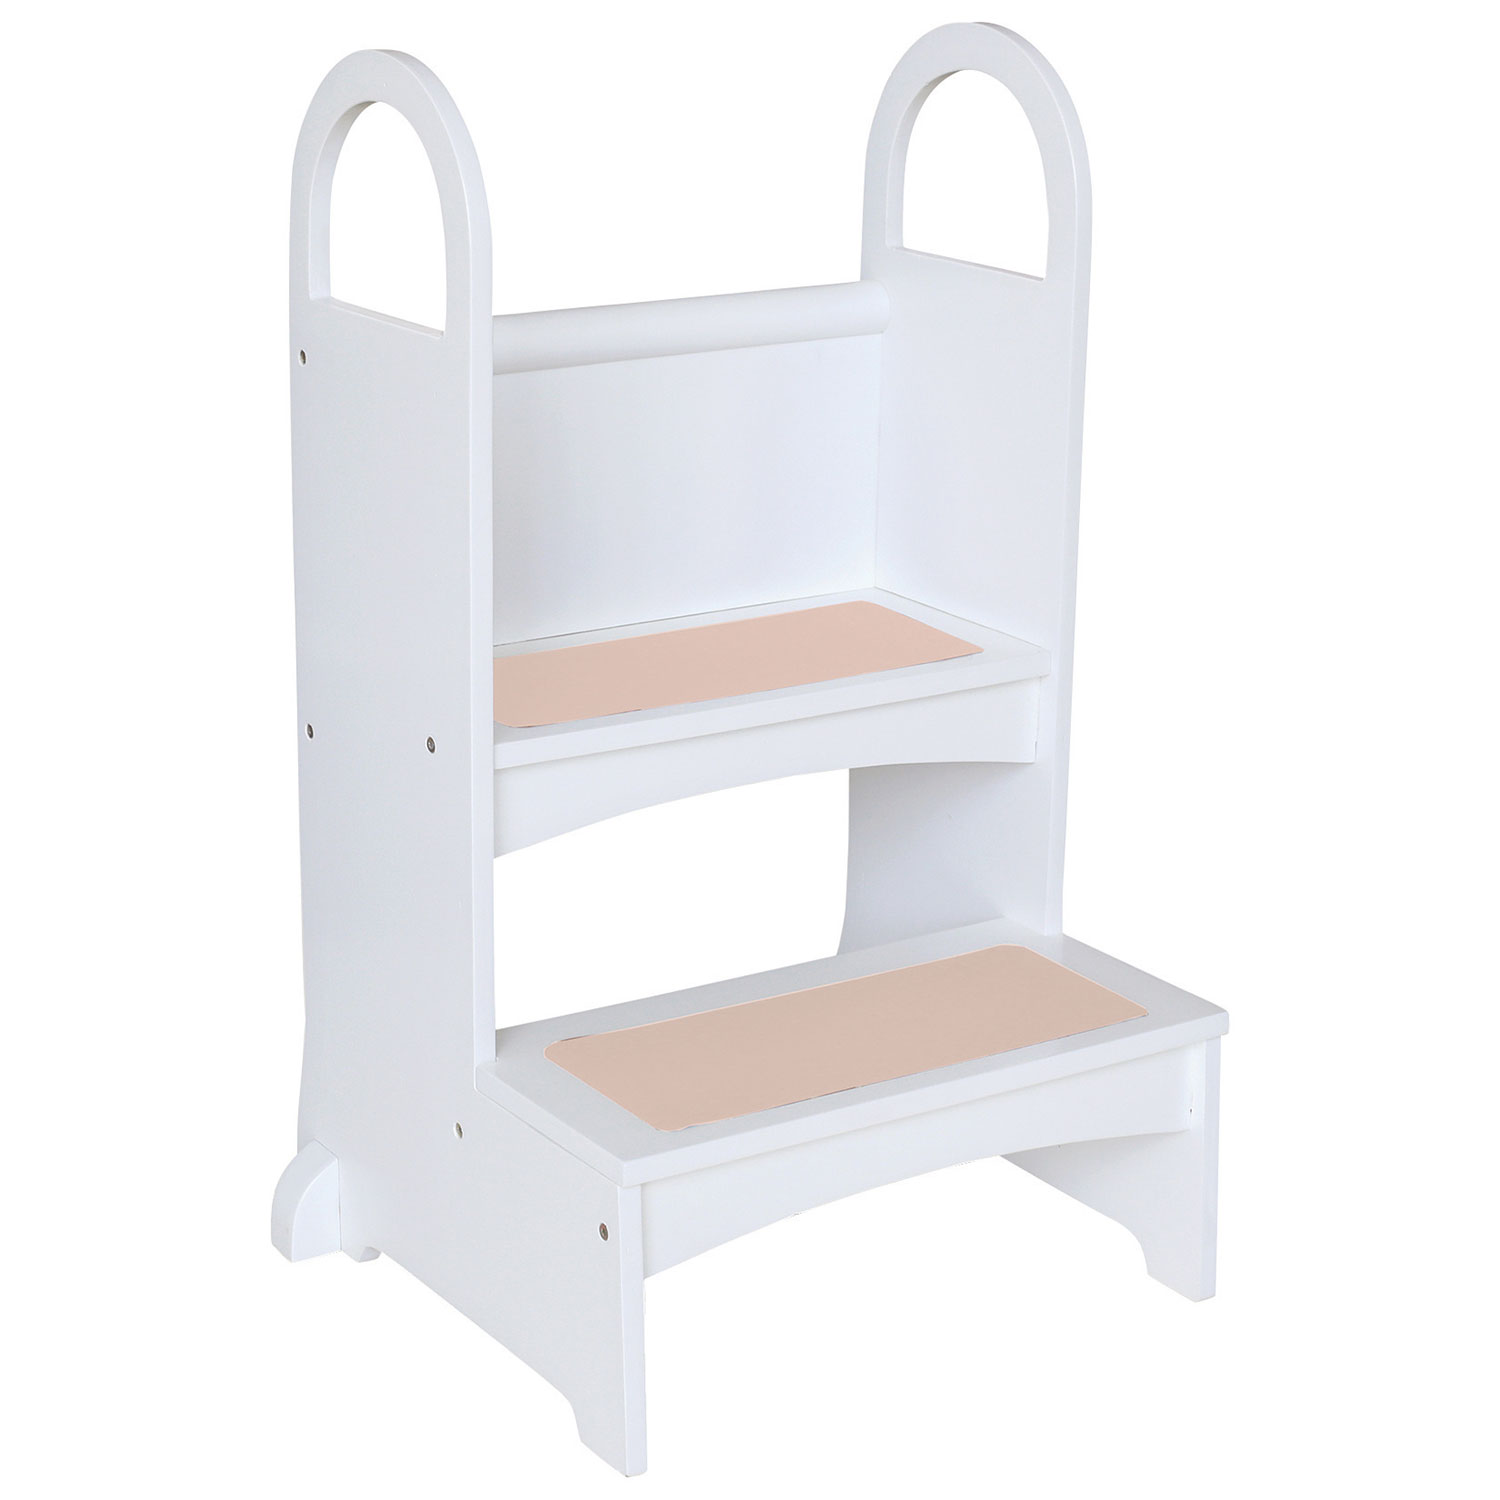 Household Helpers High Rise Step Stool - White  Step Stools - Best Buy Canada  sc 1 st  Best Buy Canada & Household Helpers High Rise Step Stool - White : Step Stools ... islam-shia.org